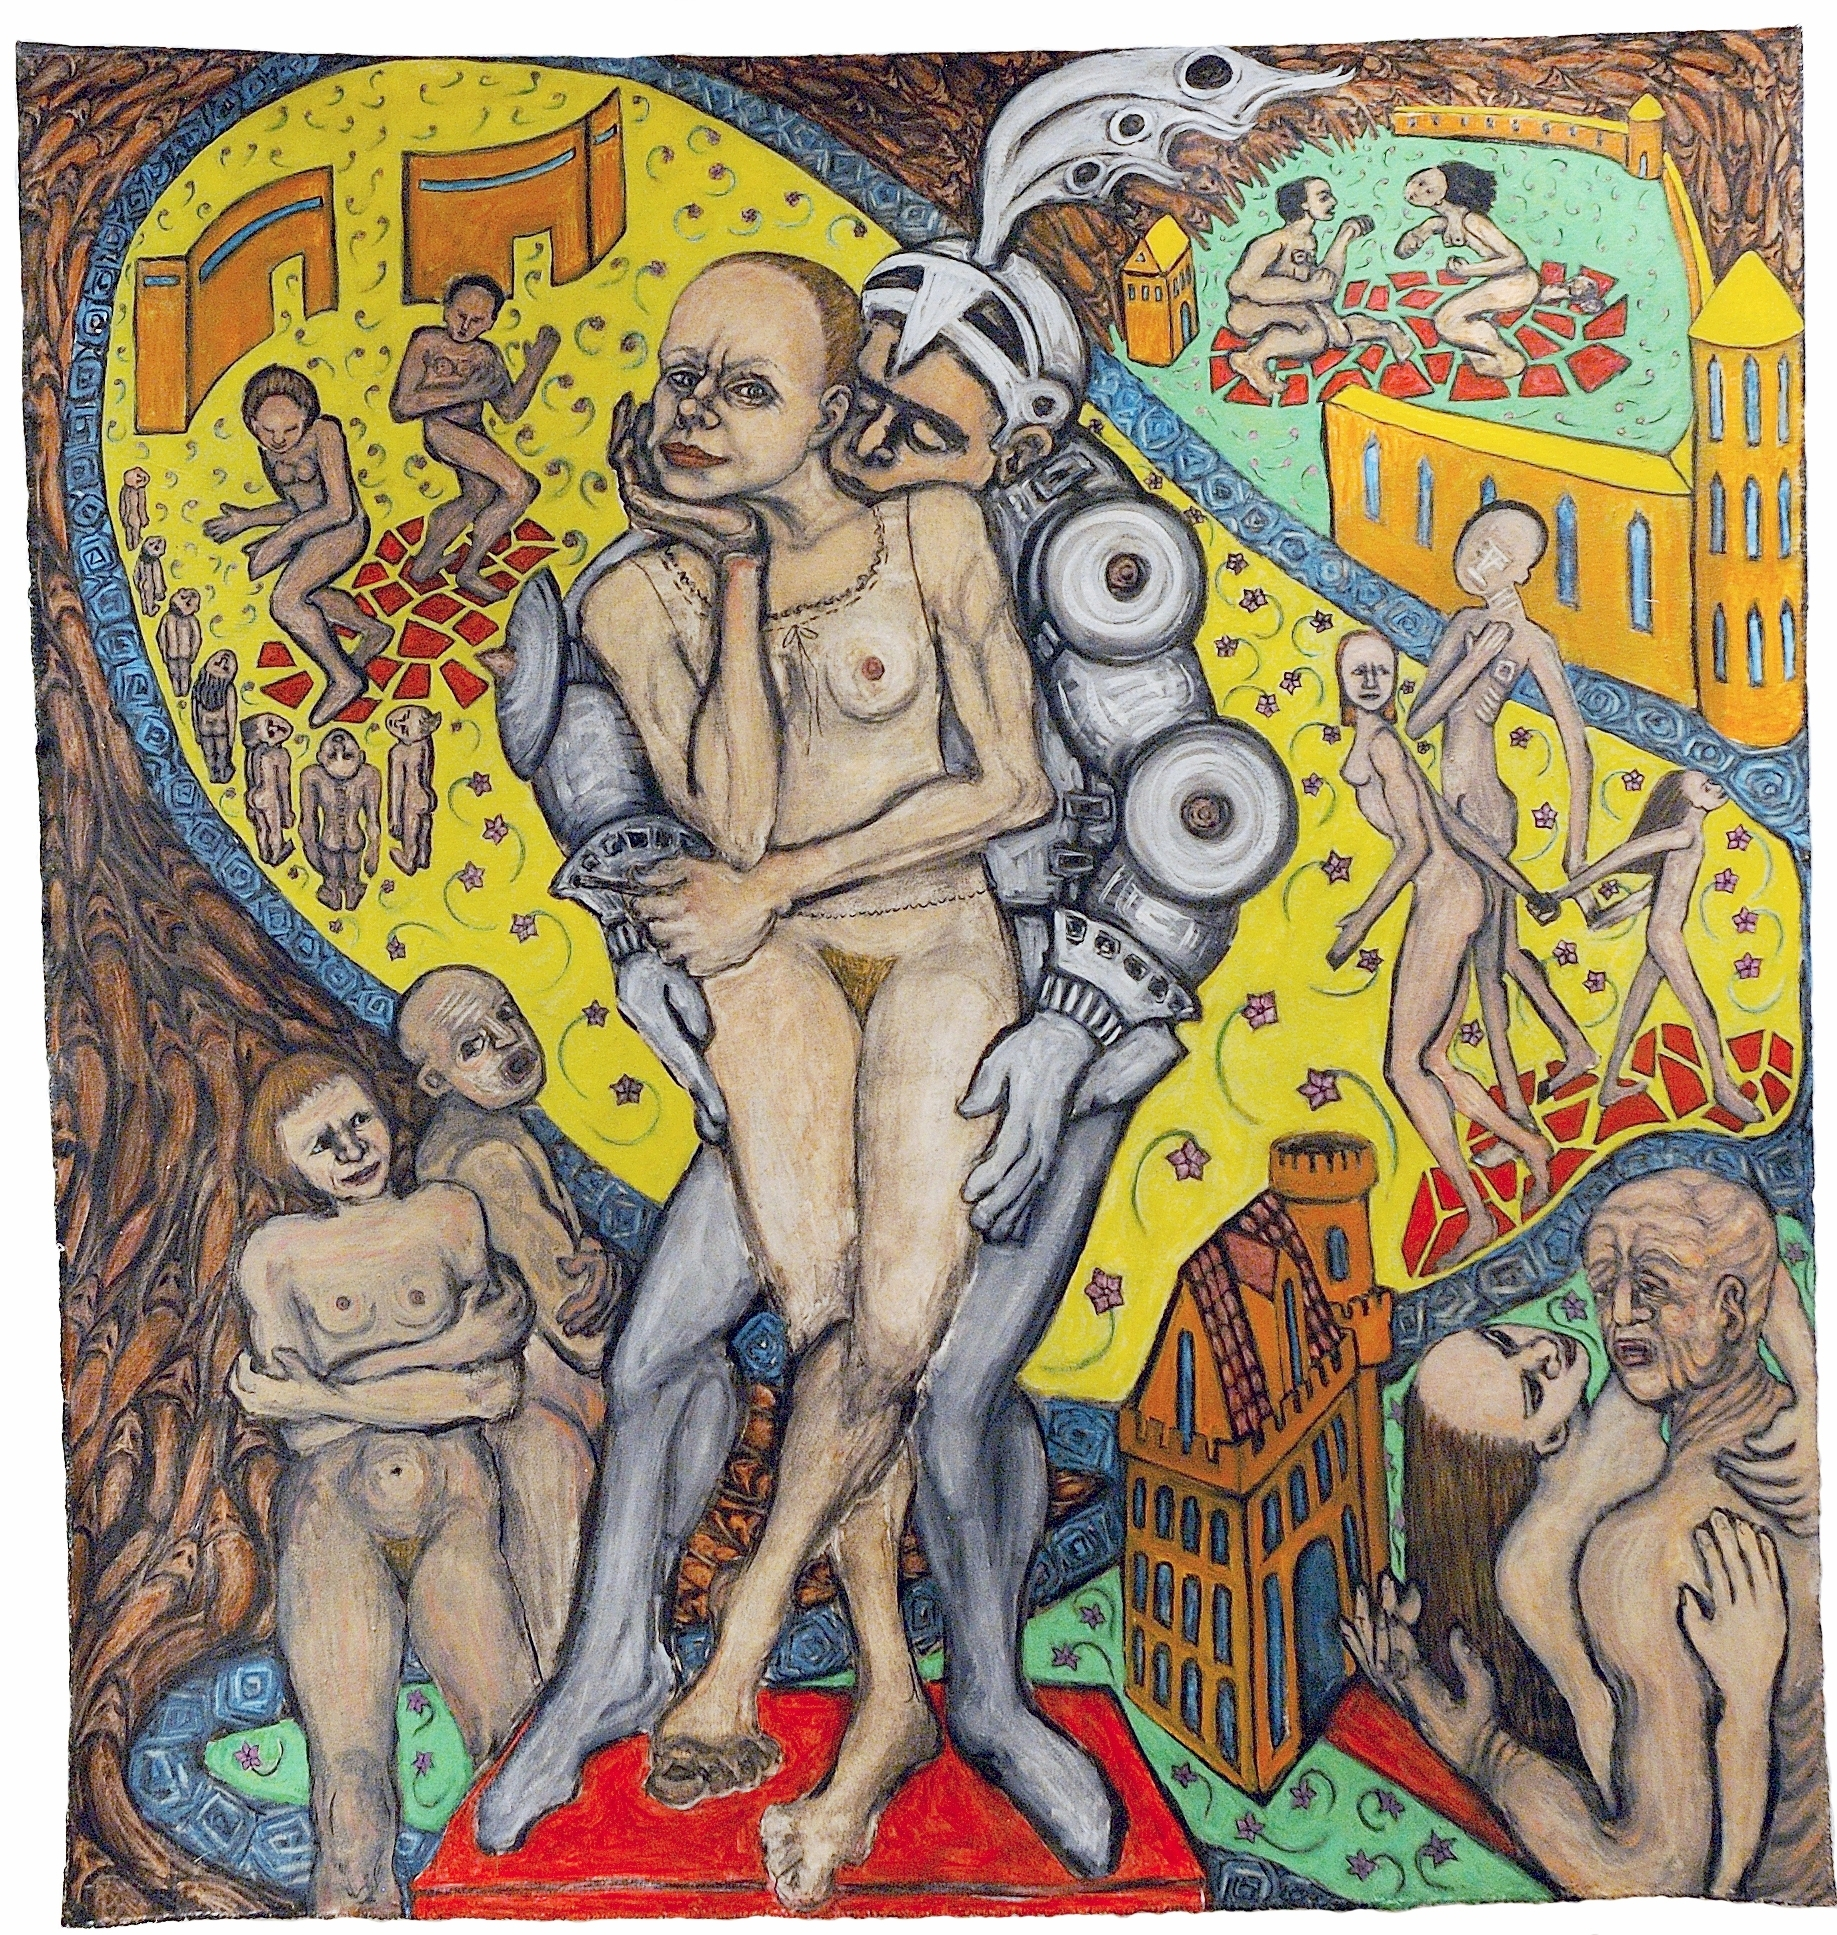 The Wife of Bath: Her Own Tale, 5.3 ft x 5 ft, 161.544 cm x 152.4 cm, oil on unstretched canvas